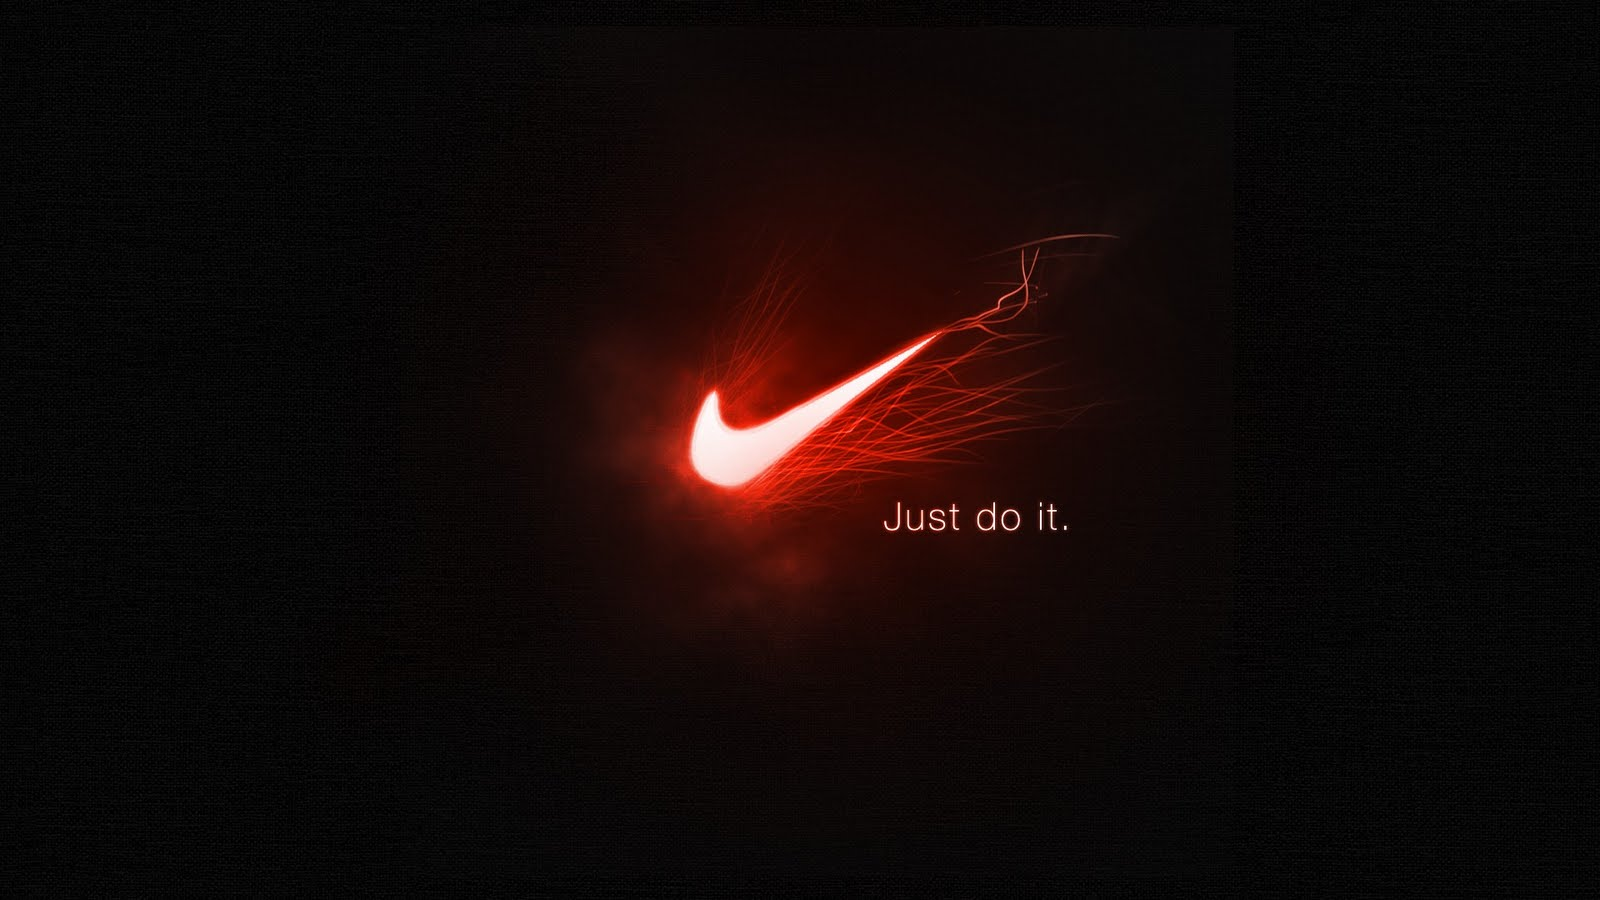 Free Download Nike Phone Wallpapers 9825 Wallpapers Coolz Hd